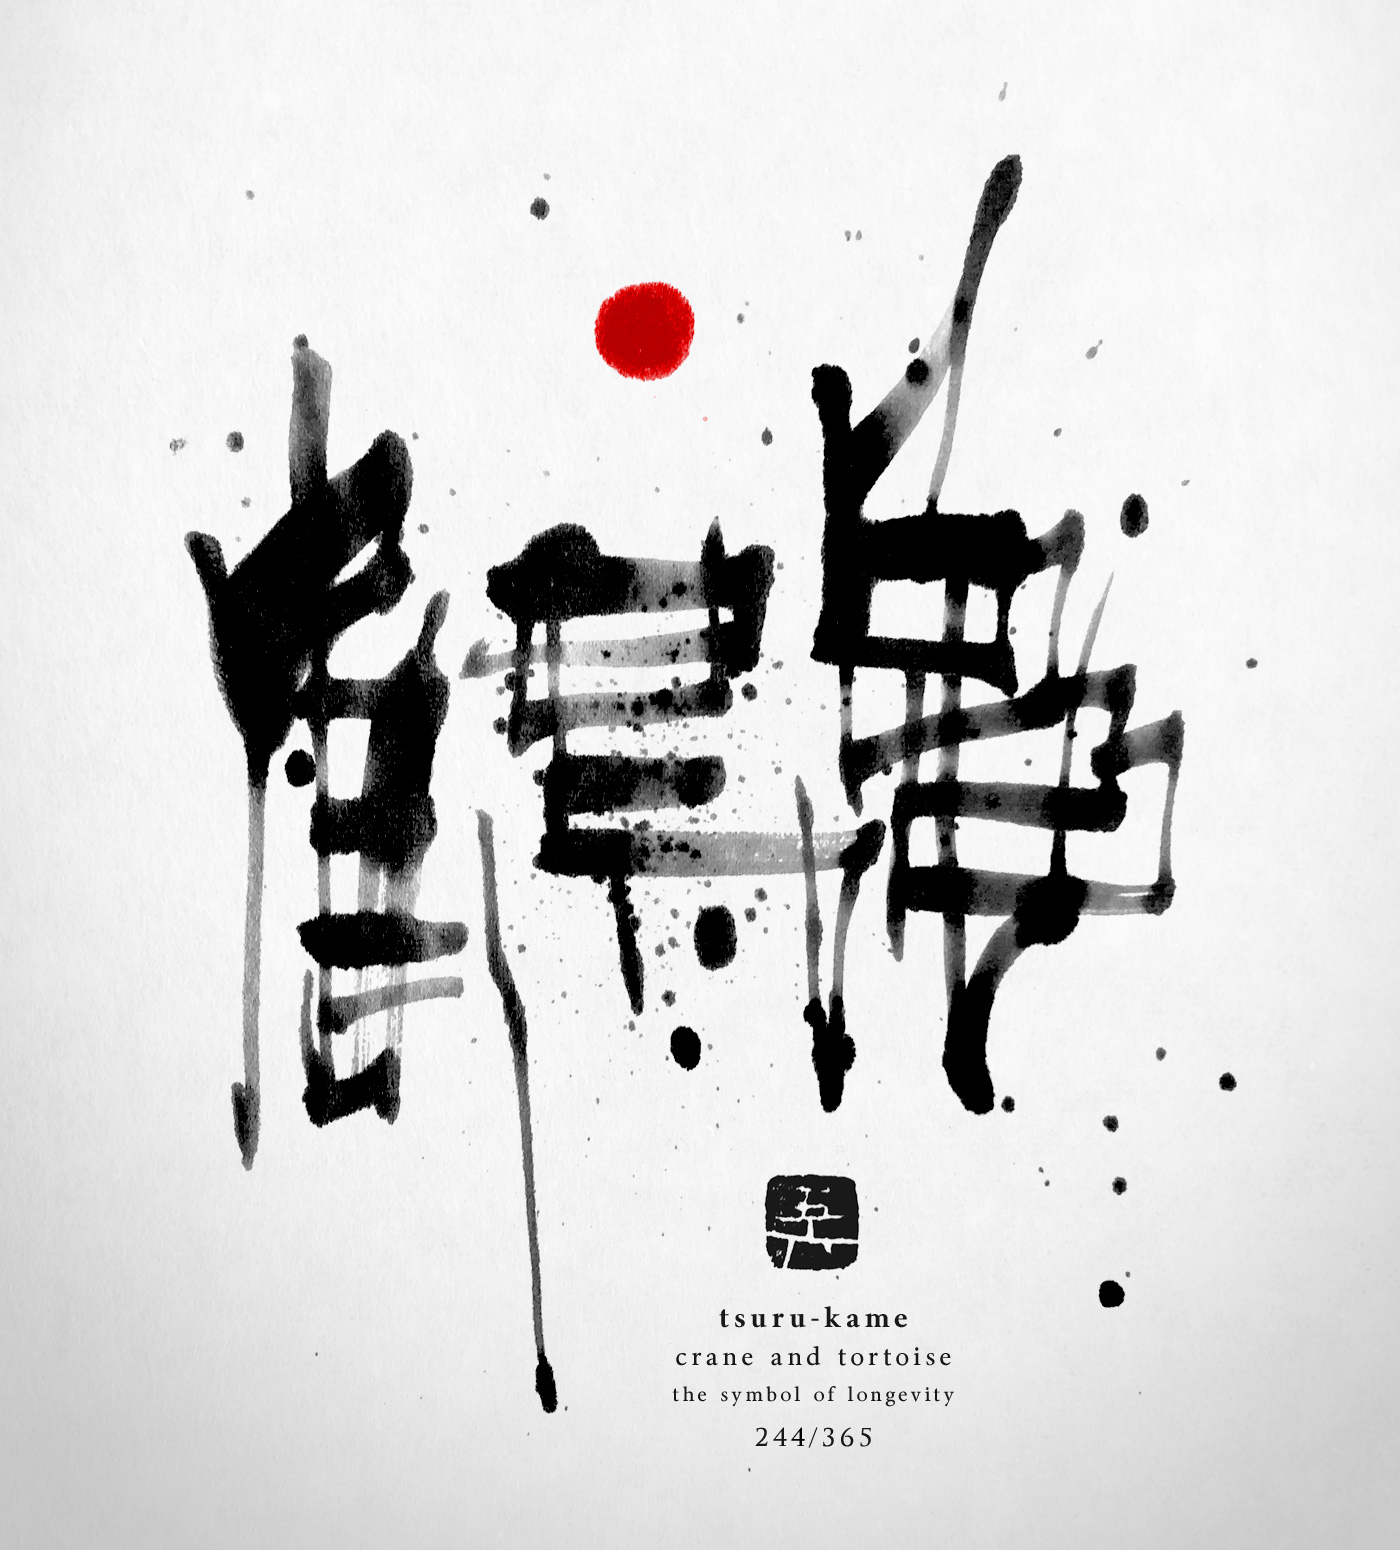 鶴亀 | crane and tortoise 書道作品 japaneseart japanese calligraphy 書家 田川悟郎 Goroh Tagawa